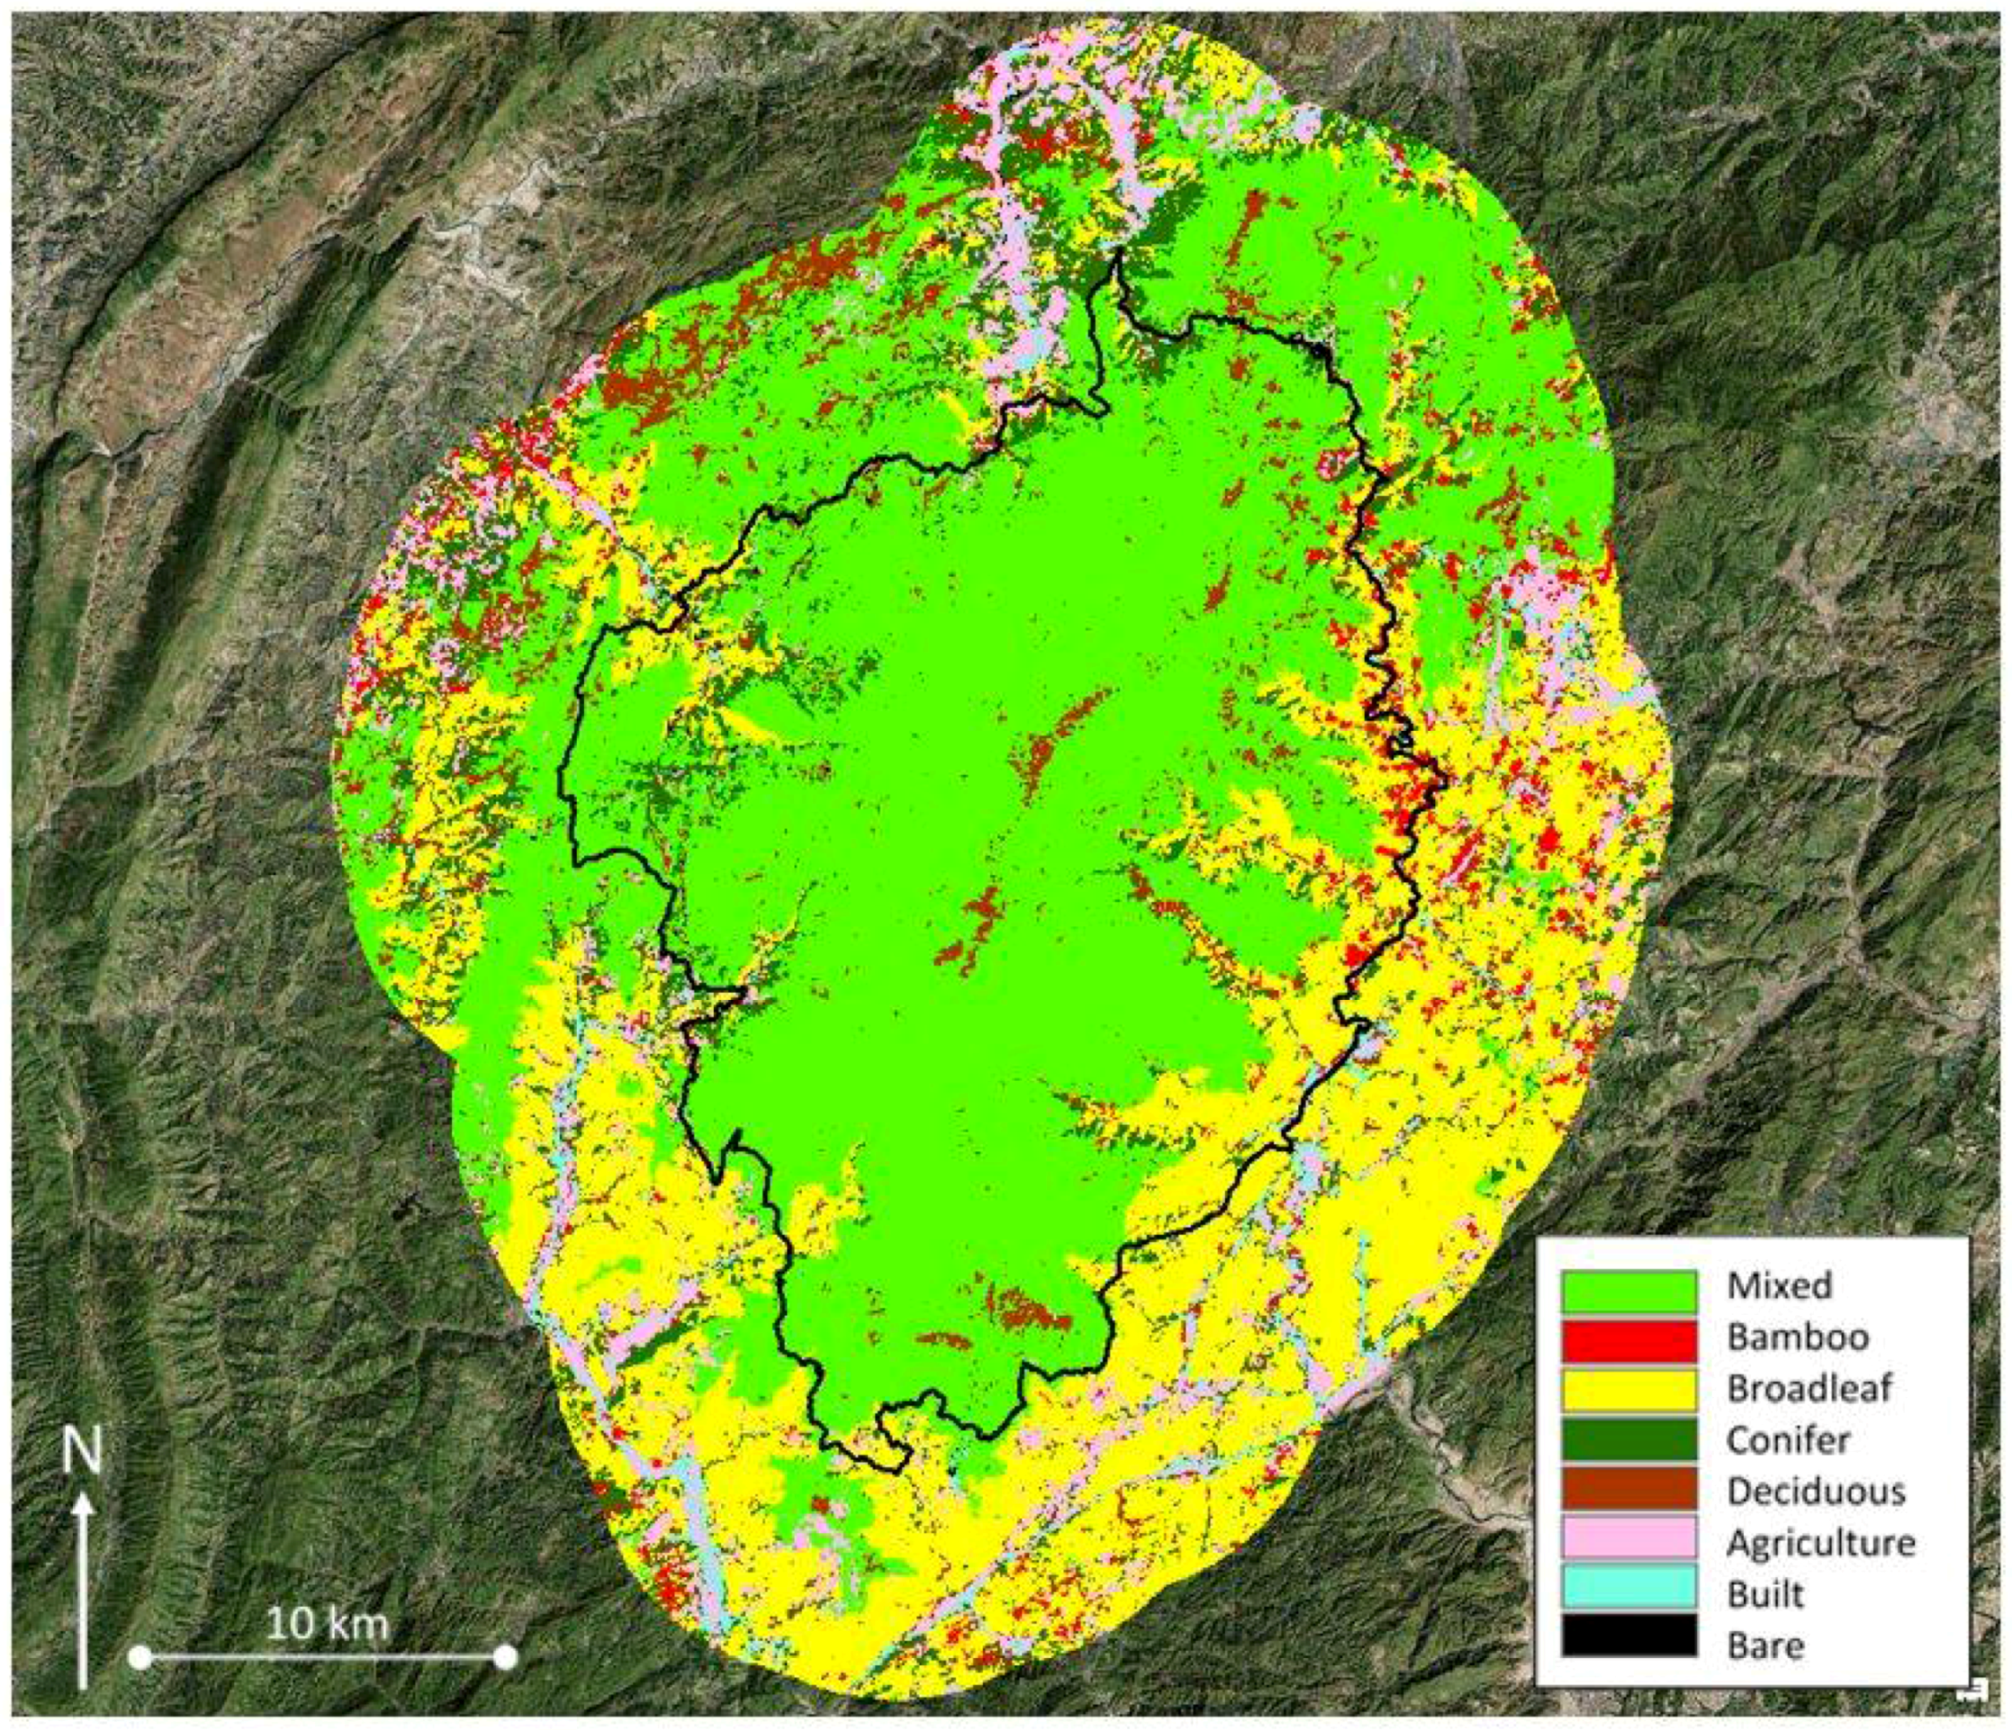 Remote Sensing | Free Full-Text | Mapping Vegetation and ... on road map usa states maps, aerial maps, android maps, ipad maps, googlr maps, msn maps, amazon fire phone maps, bing maps, goolge maps, microsoft maps, stanford university maps, topographic maps, iphone maps, aeronautical maps, online maps, waze maps, gppgle maps, googie maps, search maps, gogole maps,